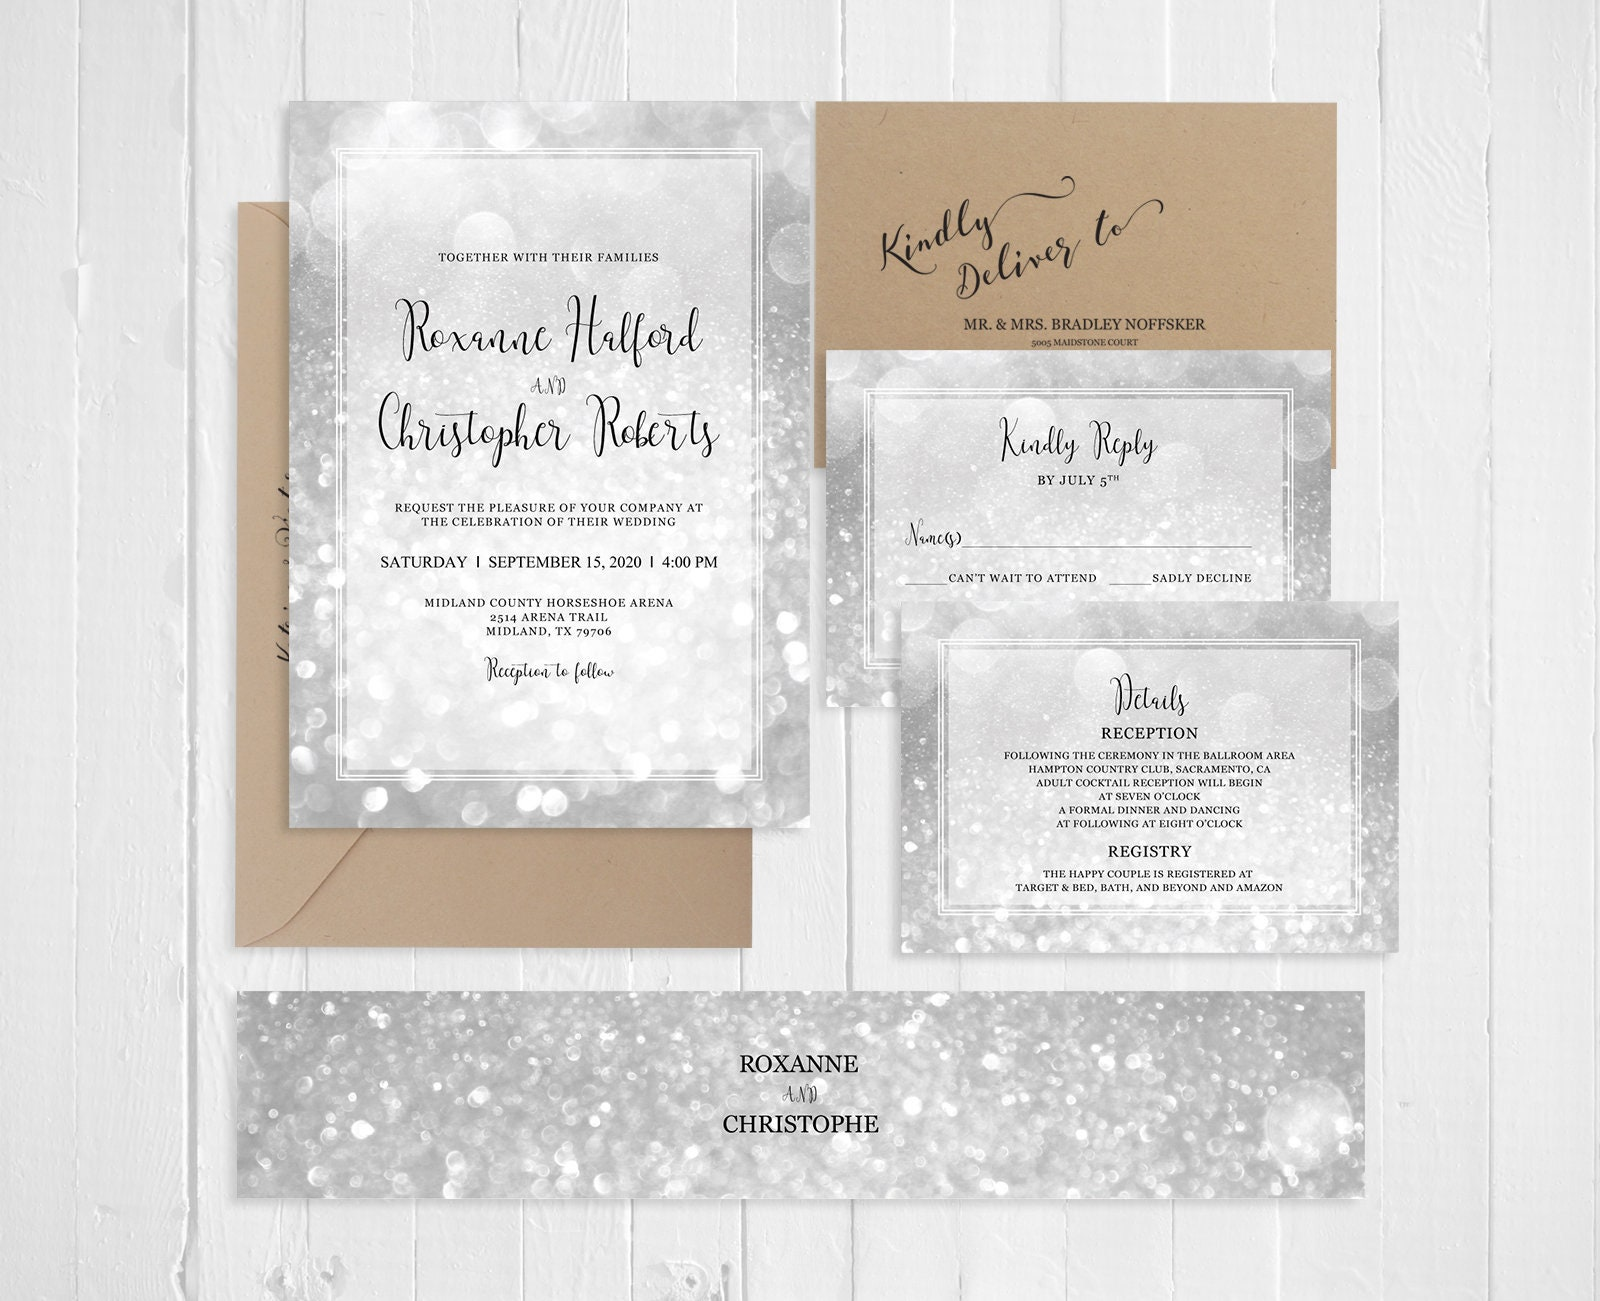 Silver Wedding Invitations Silver Sparkles Invitation Suite Silver Bokeh  Wedding Invitation Printed Invite RSVP Set SC799(120LB)